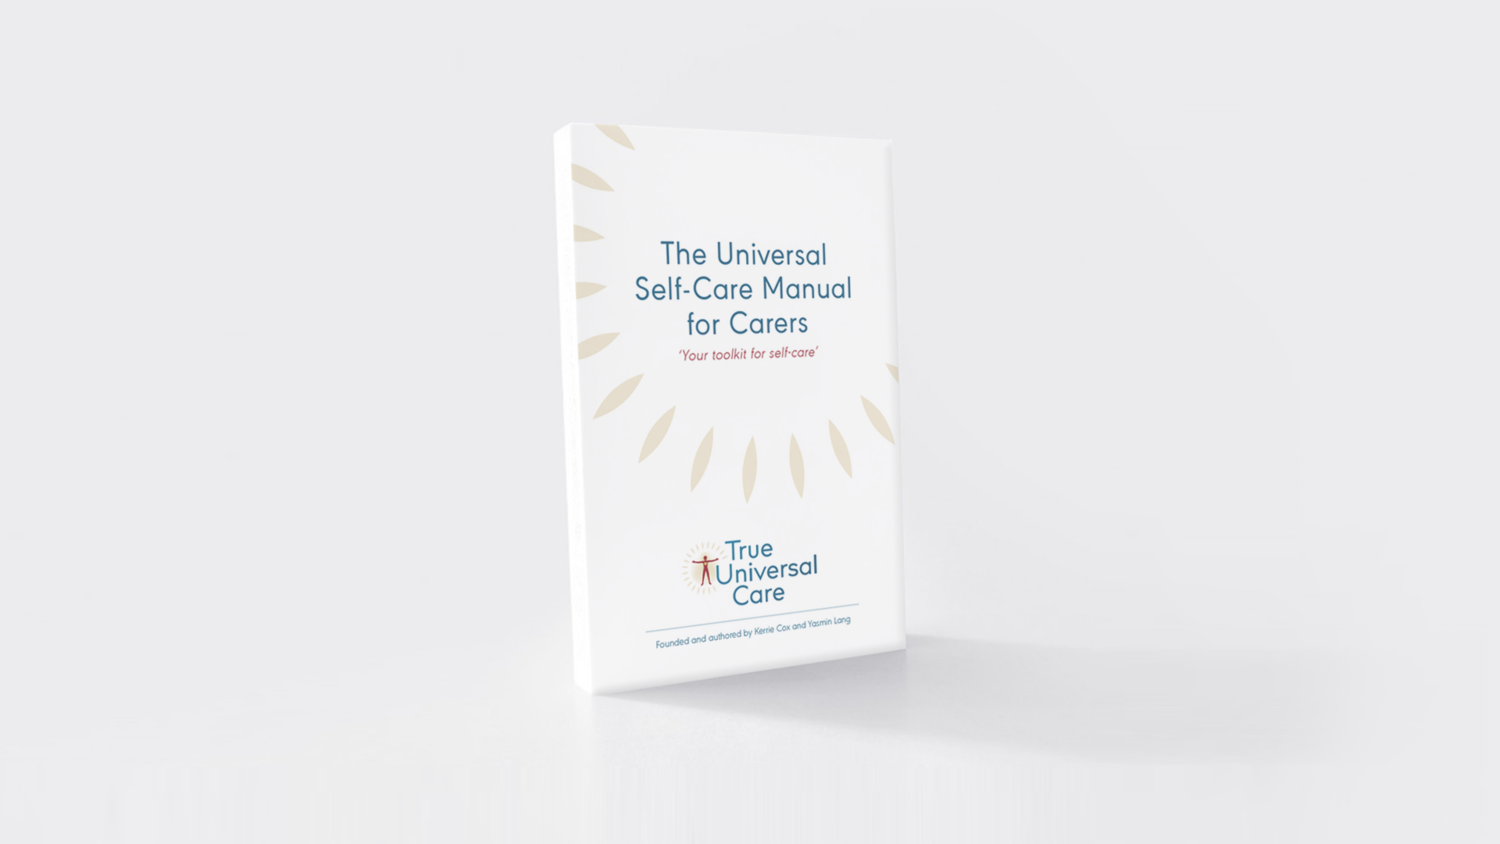 The Universal Self-Care Manual For Carers